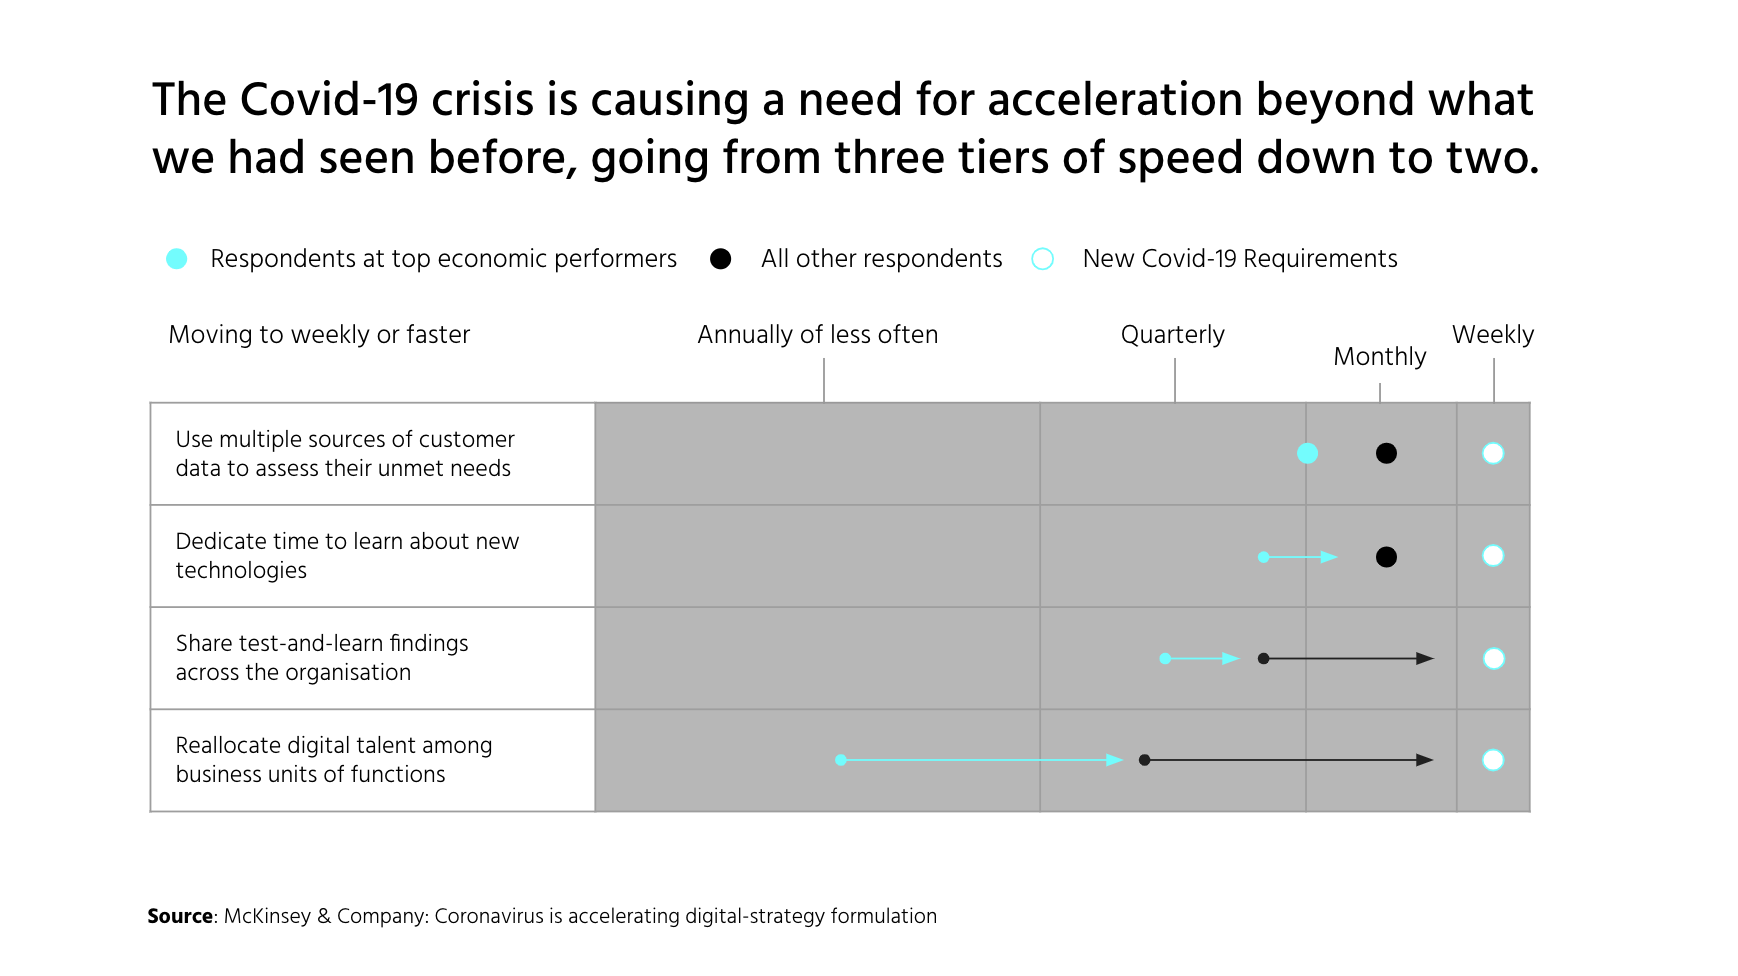 McKinsey research exploring technology trends